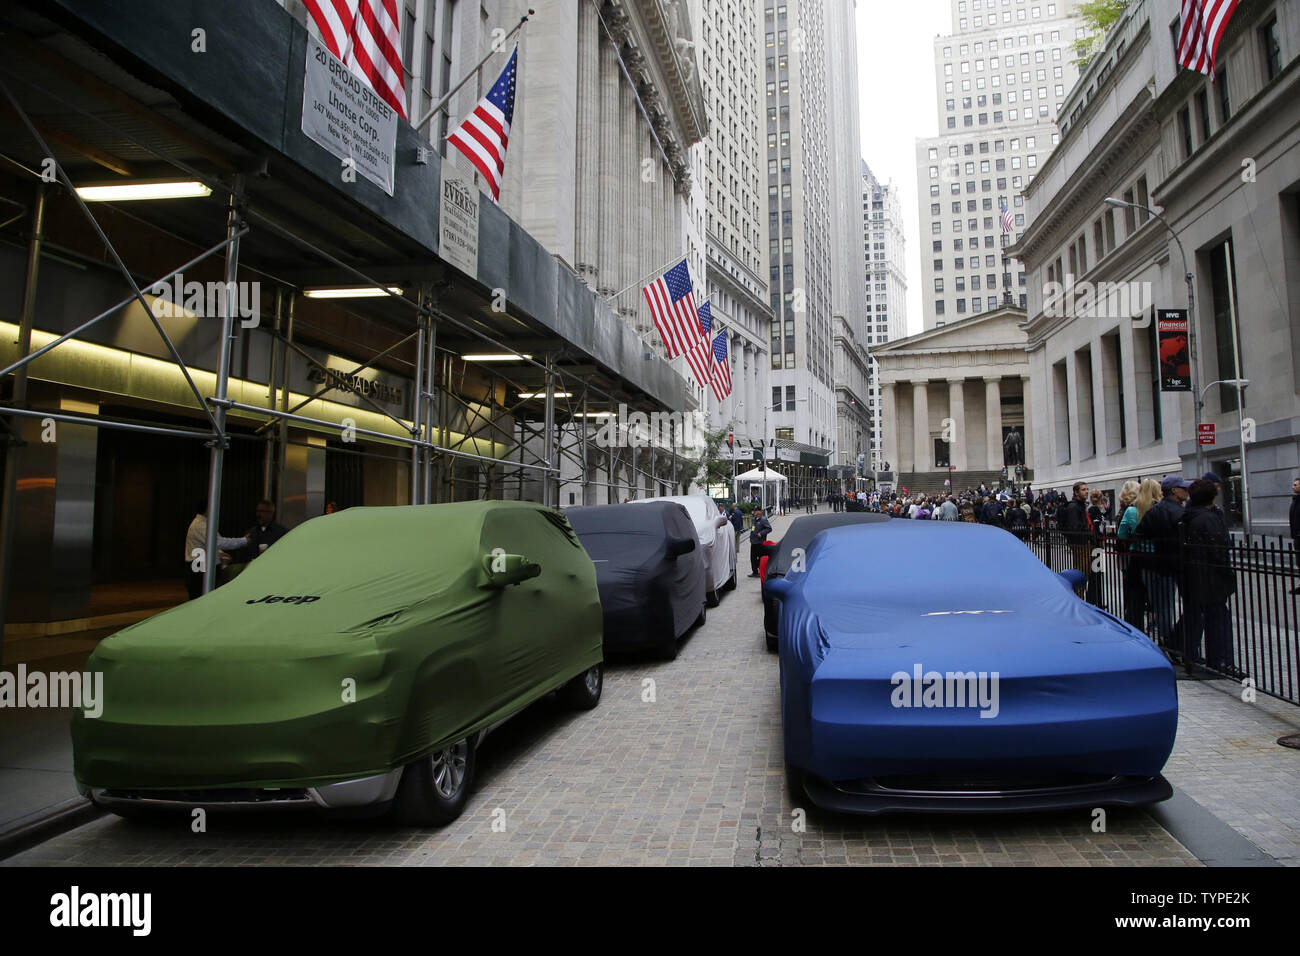 Covered cars sit at the entrance to the NYSE on the day Fiat Chrysler Automobiles begins trading for the first time at the New York Stock Exchange on Wall Street in New York City on October 13, 2014. Fiat Chrysler Automobiles began trading on the New York Stock Exchange on Monday under the symbol FCAU.     UPI/John Angelillo Stock Photo